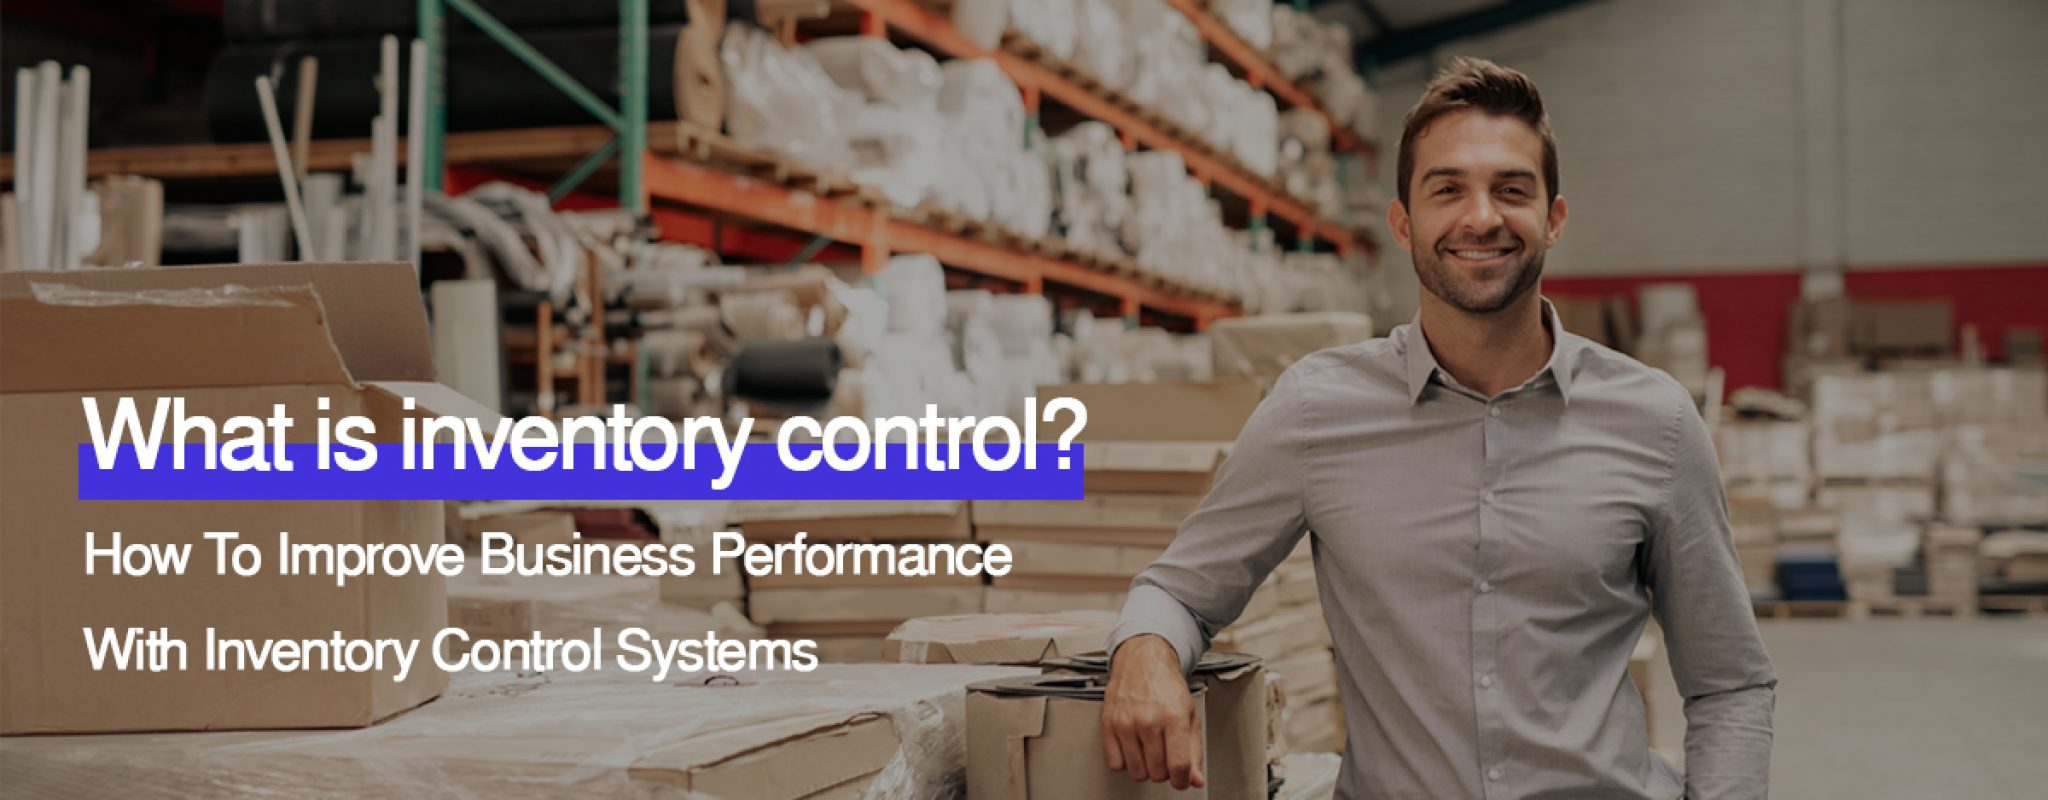 How To Improve Business Performance With Inventory Control Systems